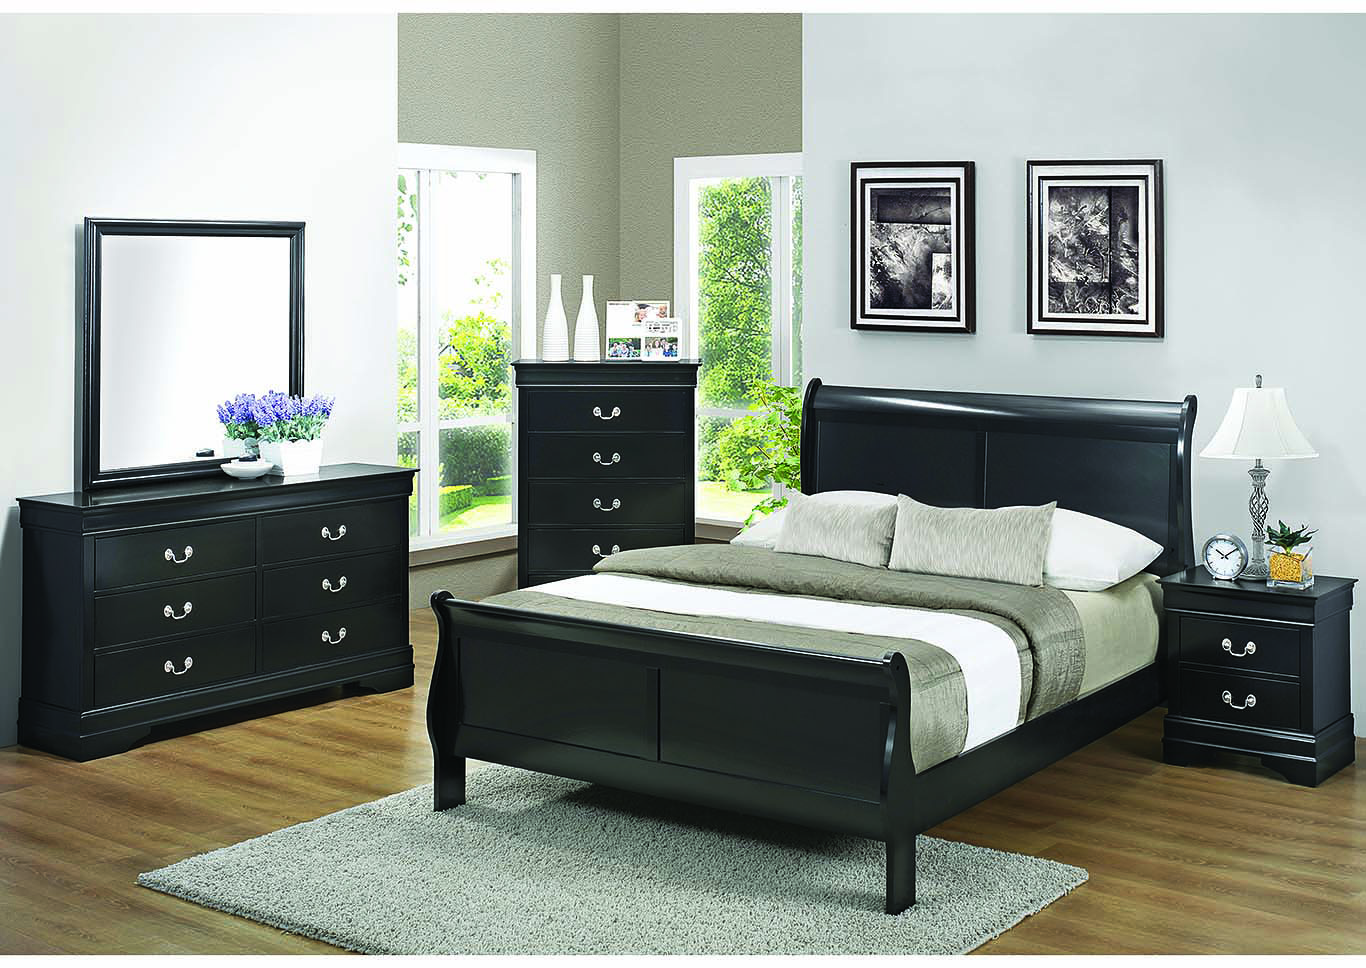 Louis Philippe Black Eastern King Bed w/Dresser, Mirror, Chest and Nightstand,Coaster Furniture